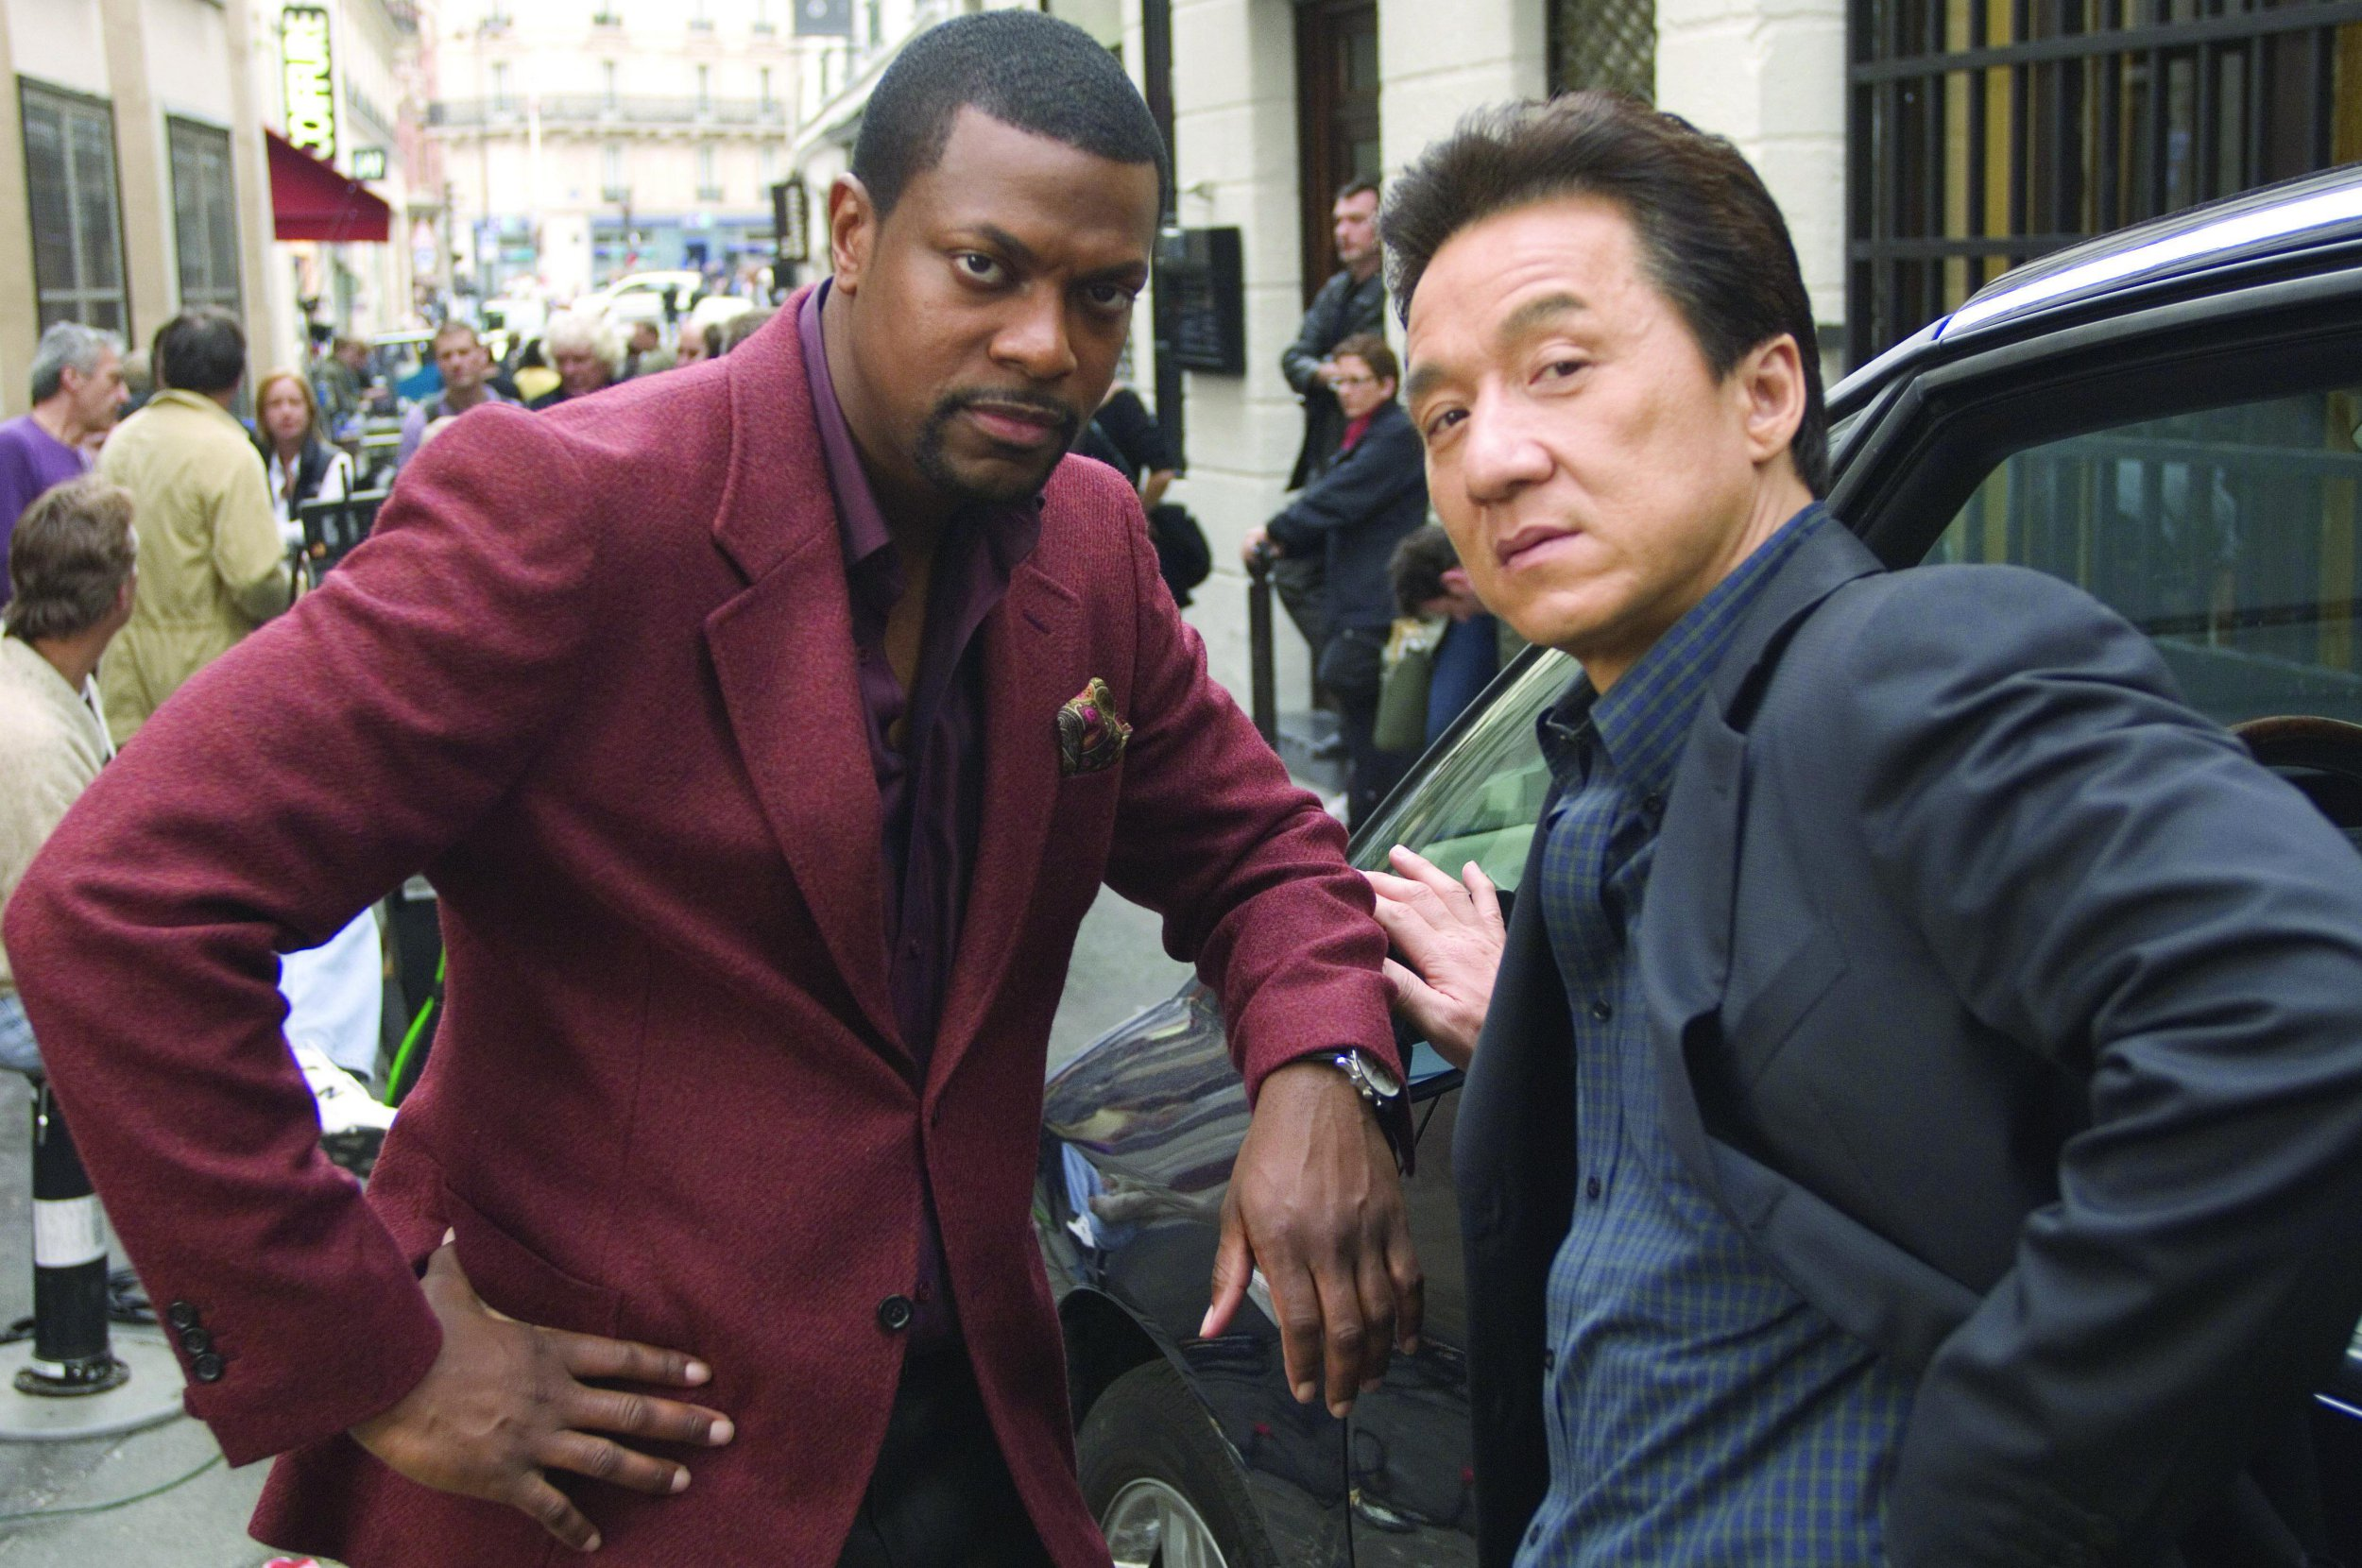 Jackie Chan confirms Rush Hour 4 will happen – as long as Chris Tucker signs on too